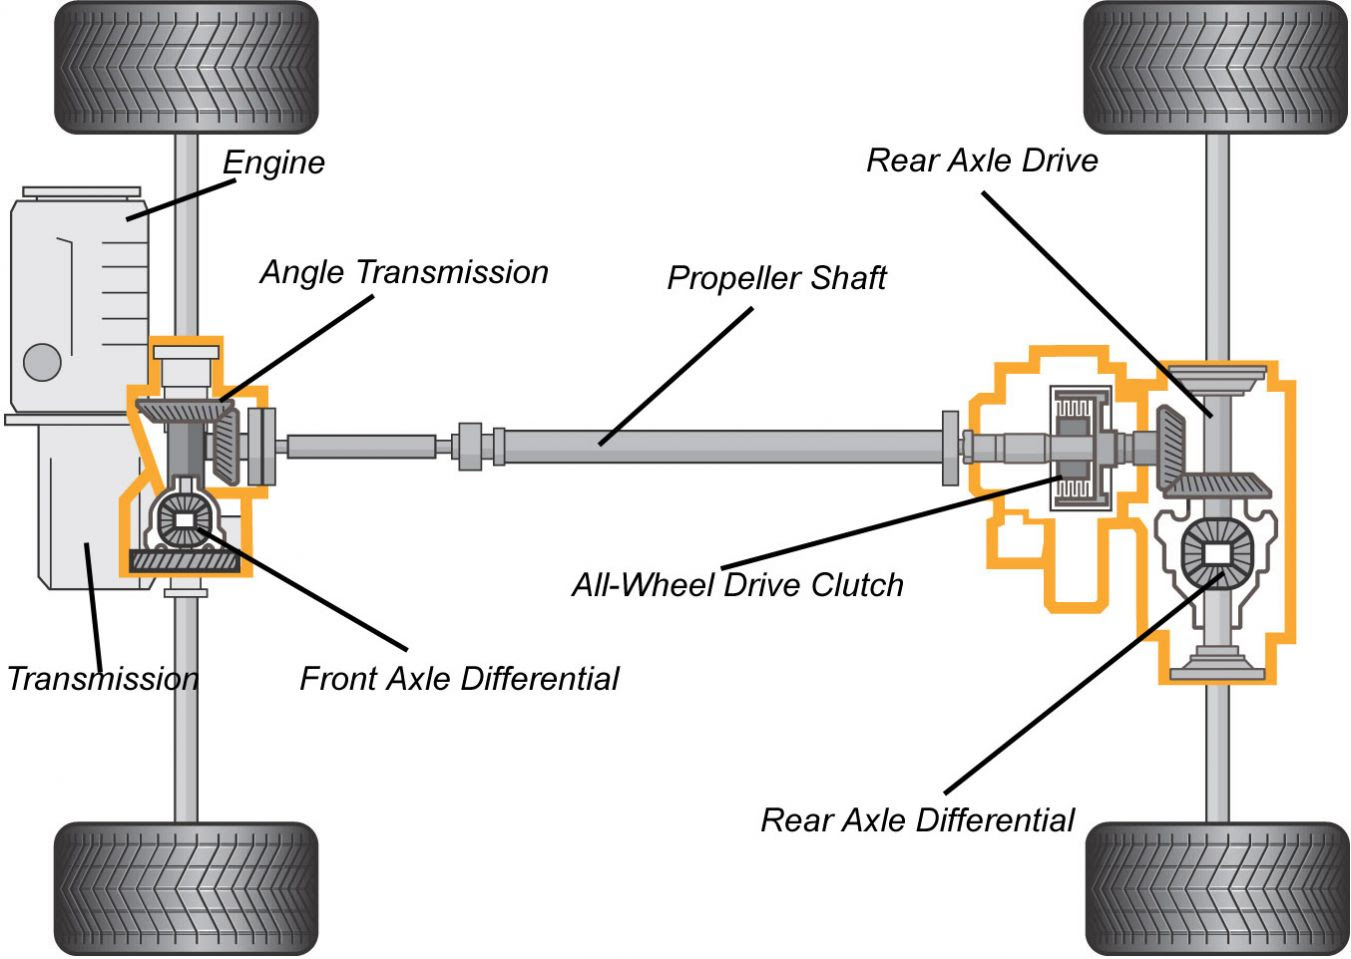 Diagram Chevrolet Drivetrain Diagram Full Version Hd Quality Drivetrain Diagram Tinydiagrams Creasitionline It